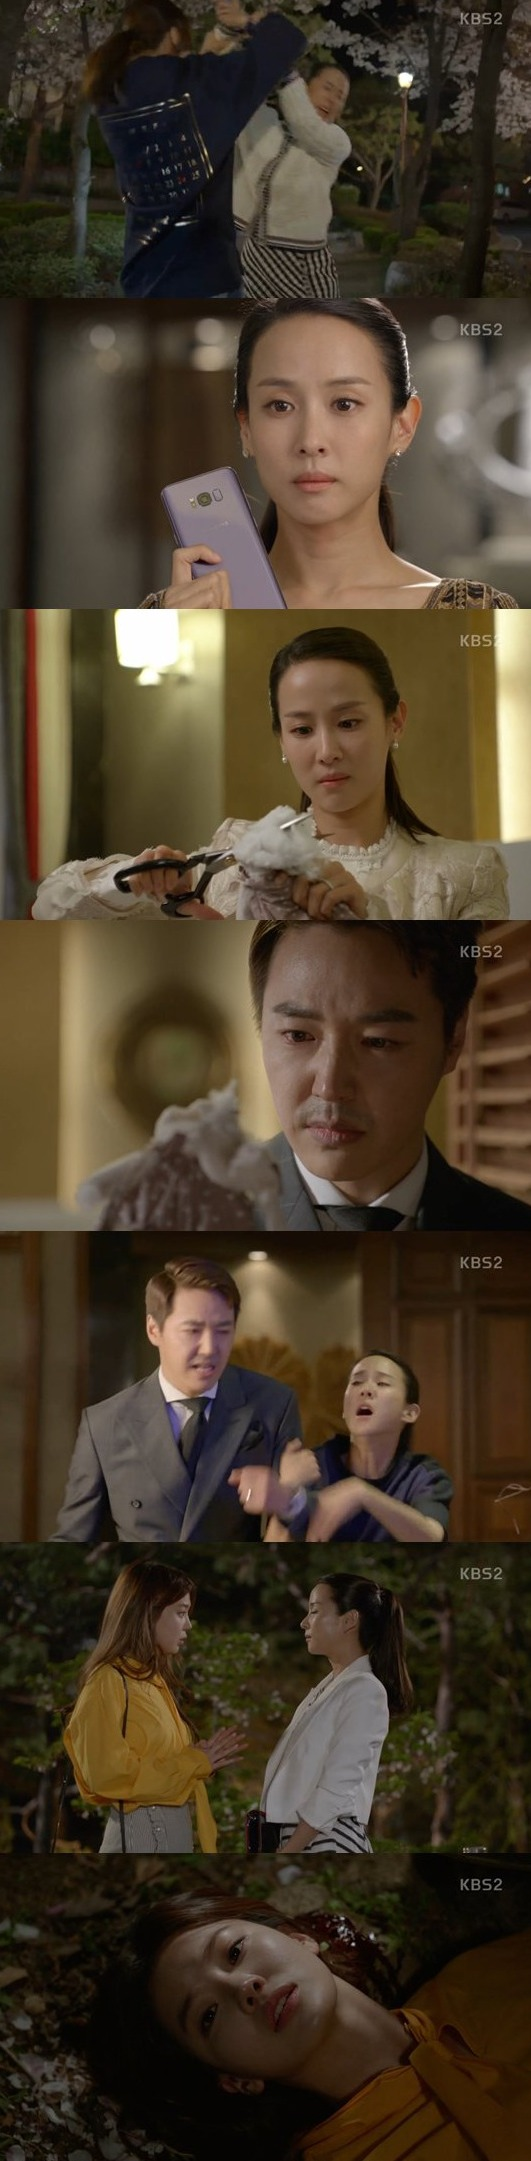 [Spoiler] Added final episode 16 captures for the Korean drama 'The Perfect Wife'